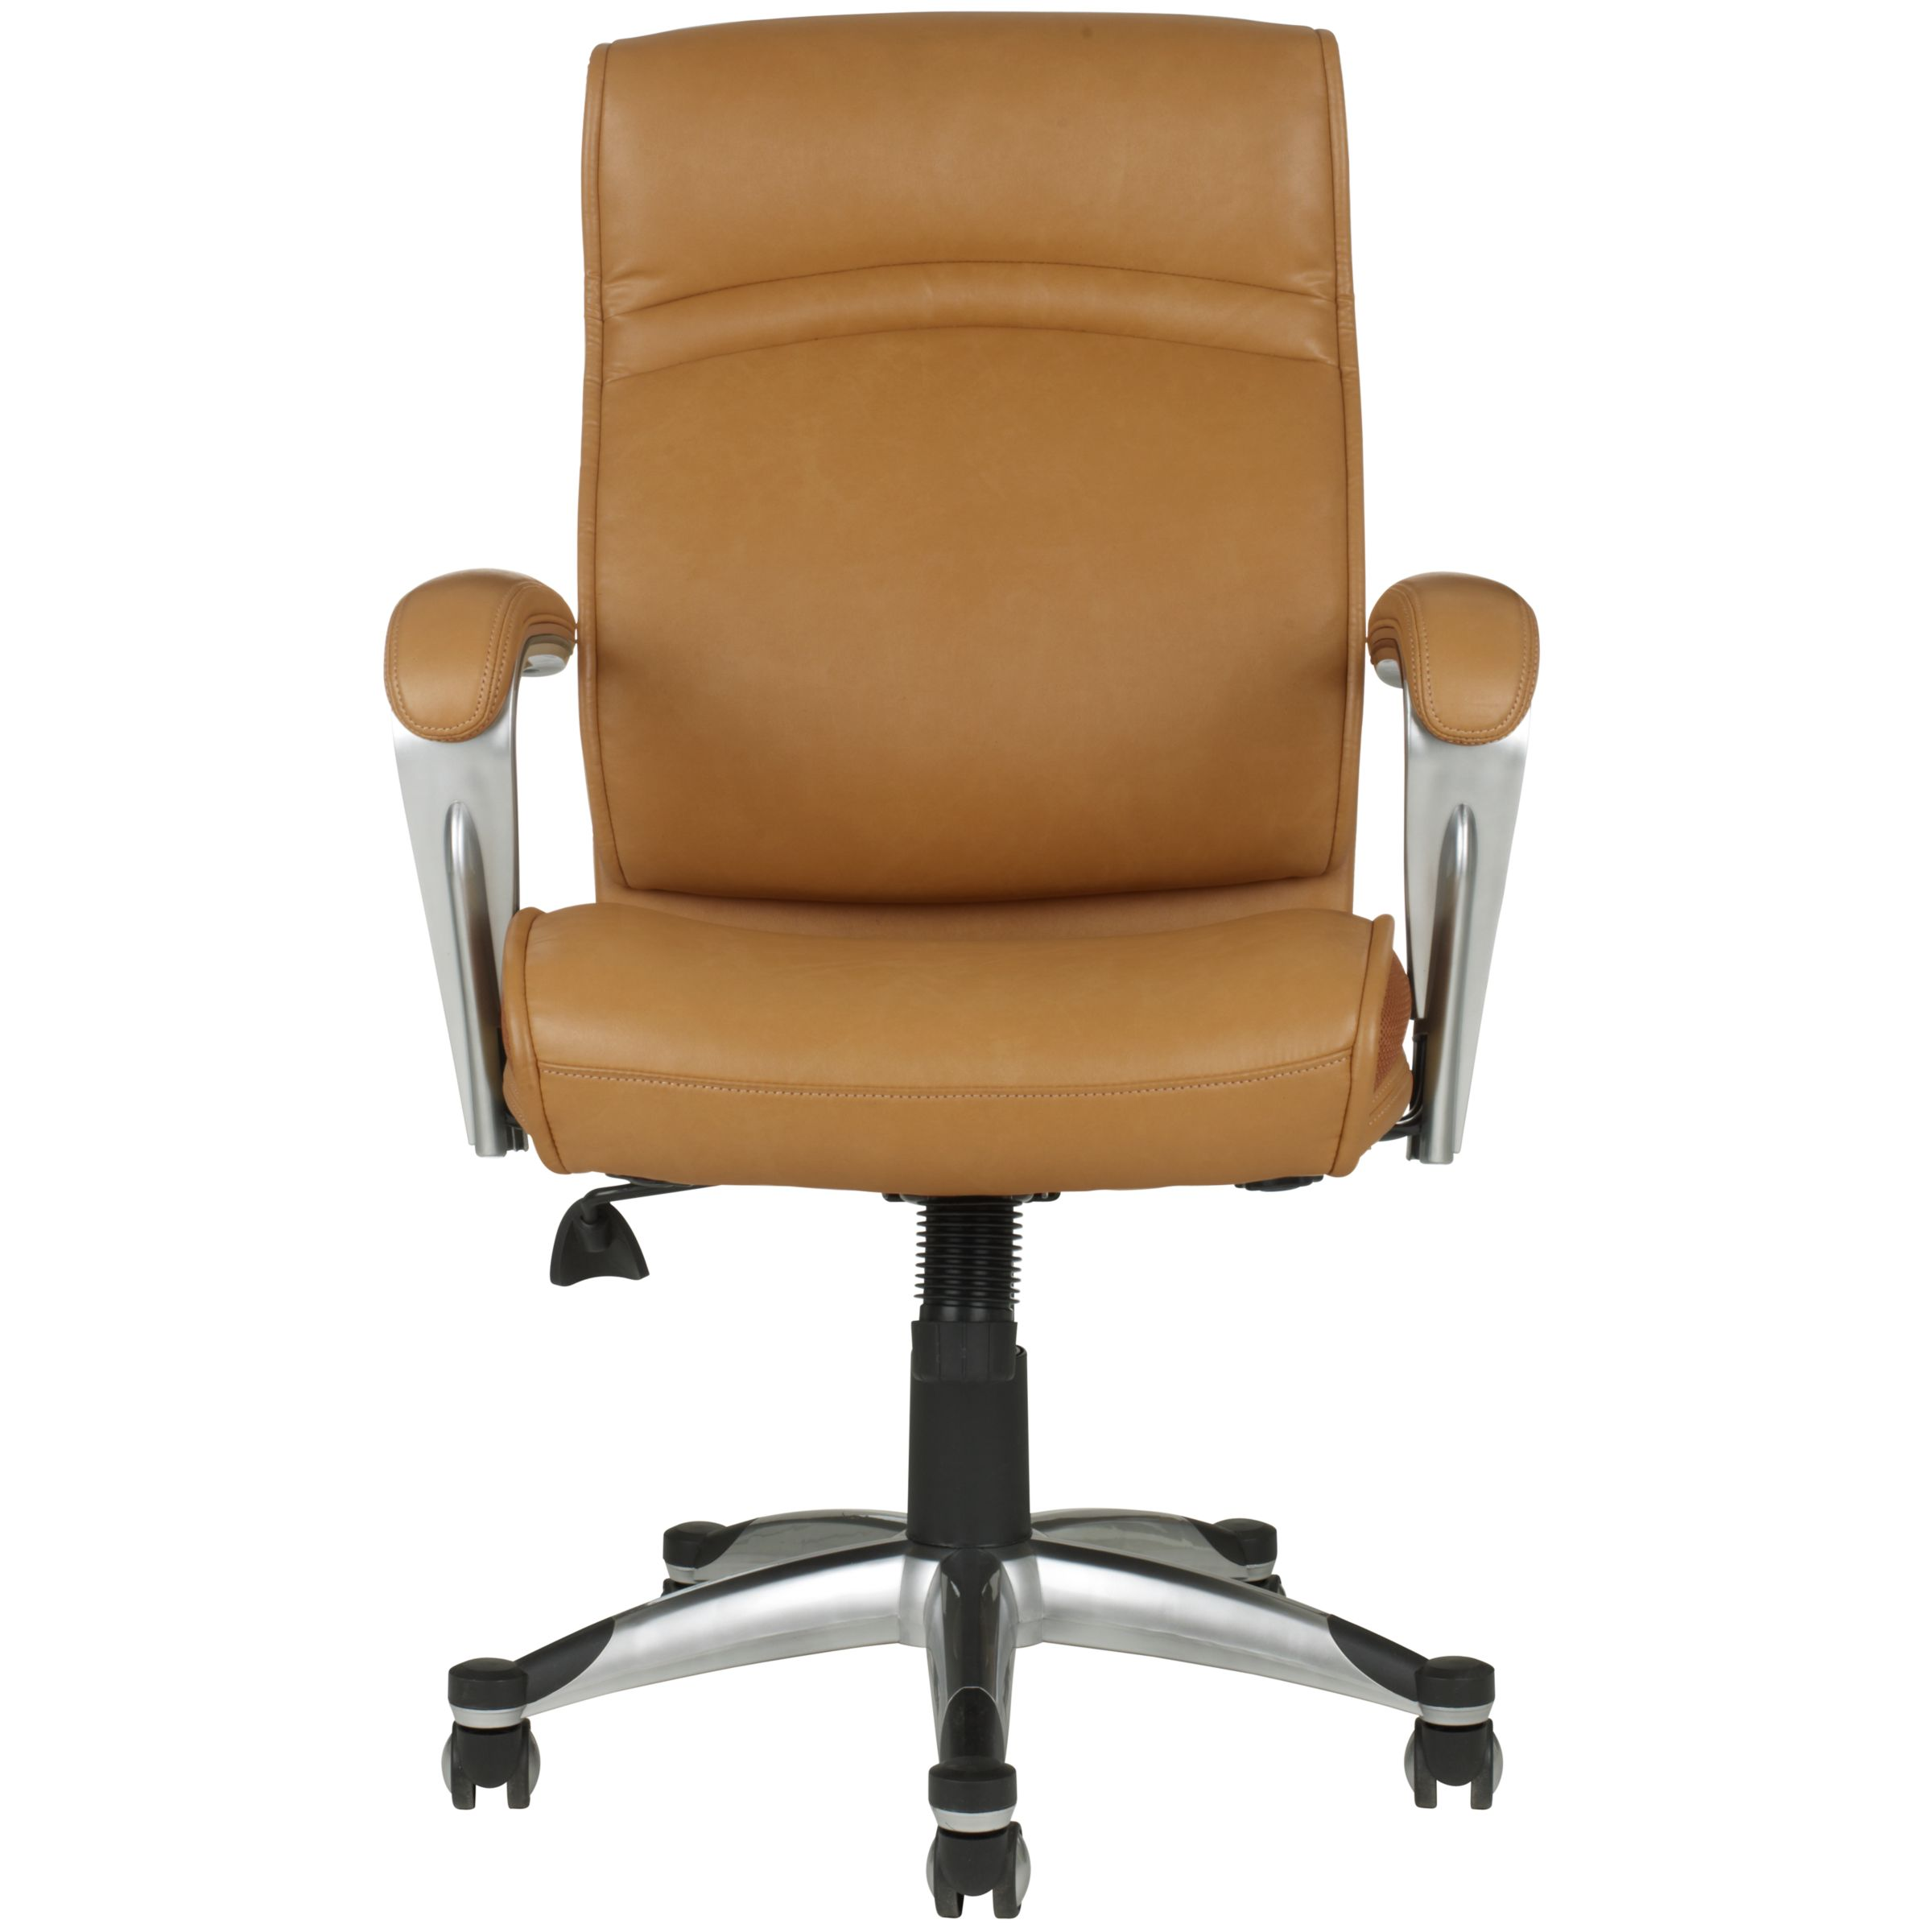 Tan Office Chair John Lewis Morgan Office Chair Tan Review Compare